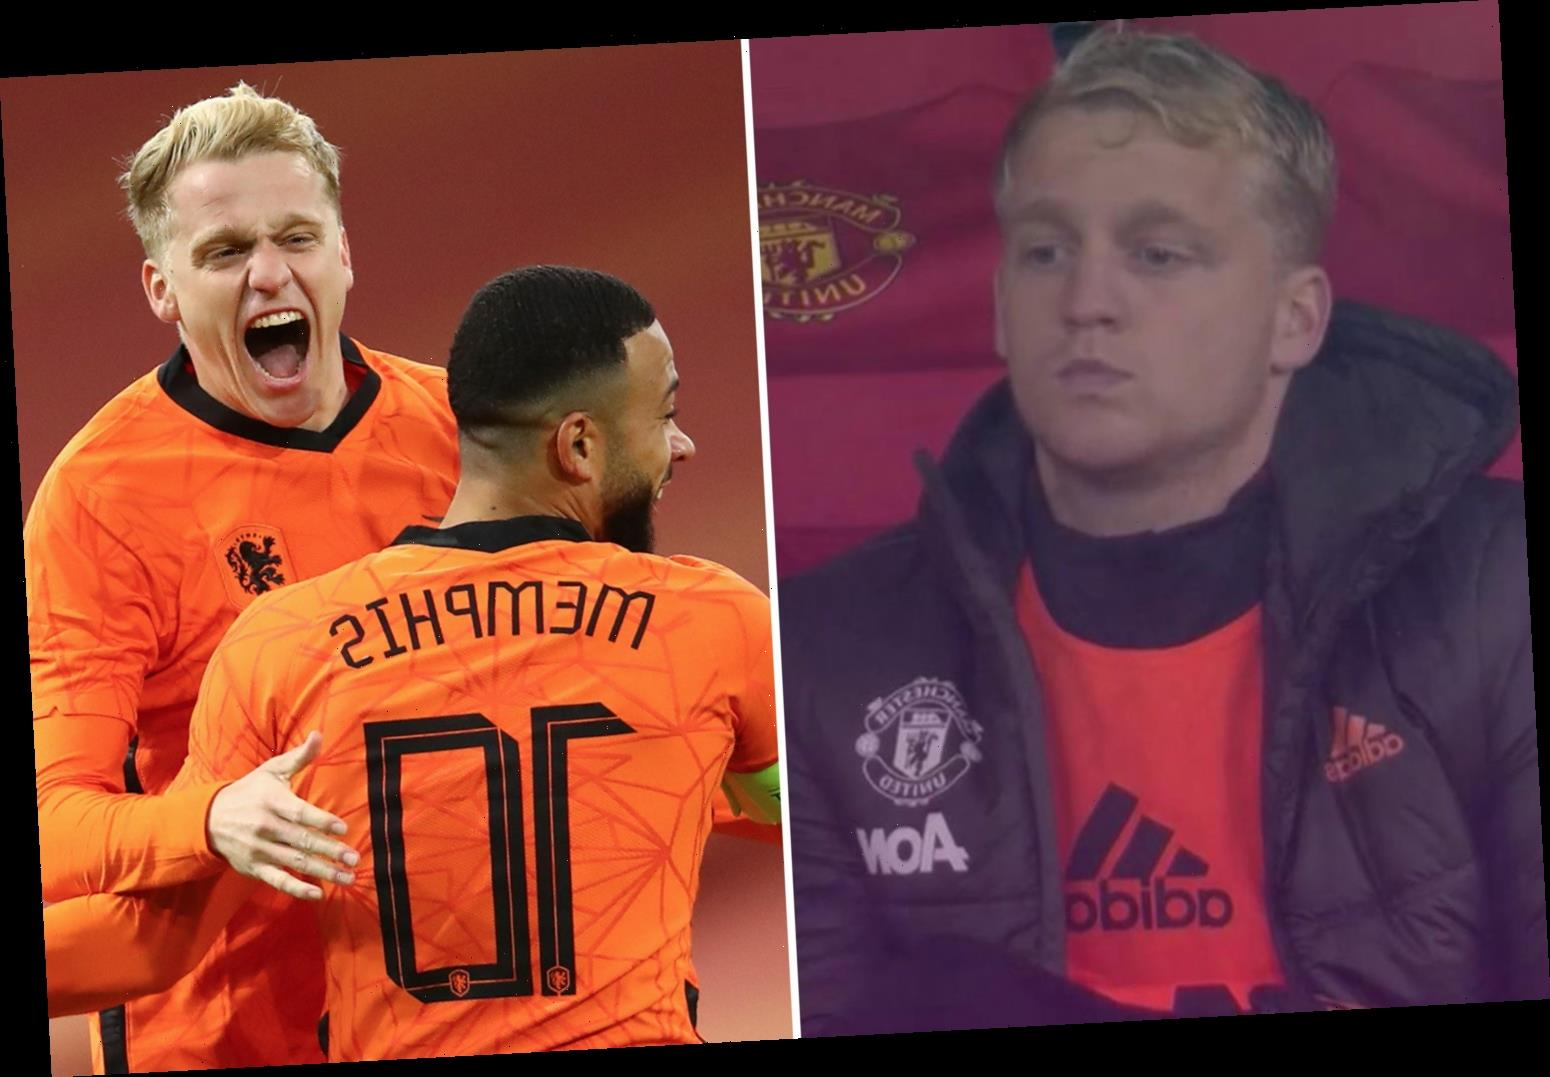 Holland 1 Spain 1: Donny van de Beek shows Man Utd what they're missing with goal in friendly